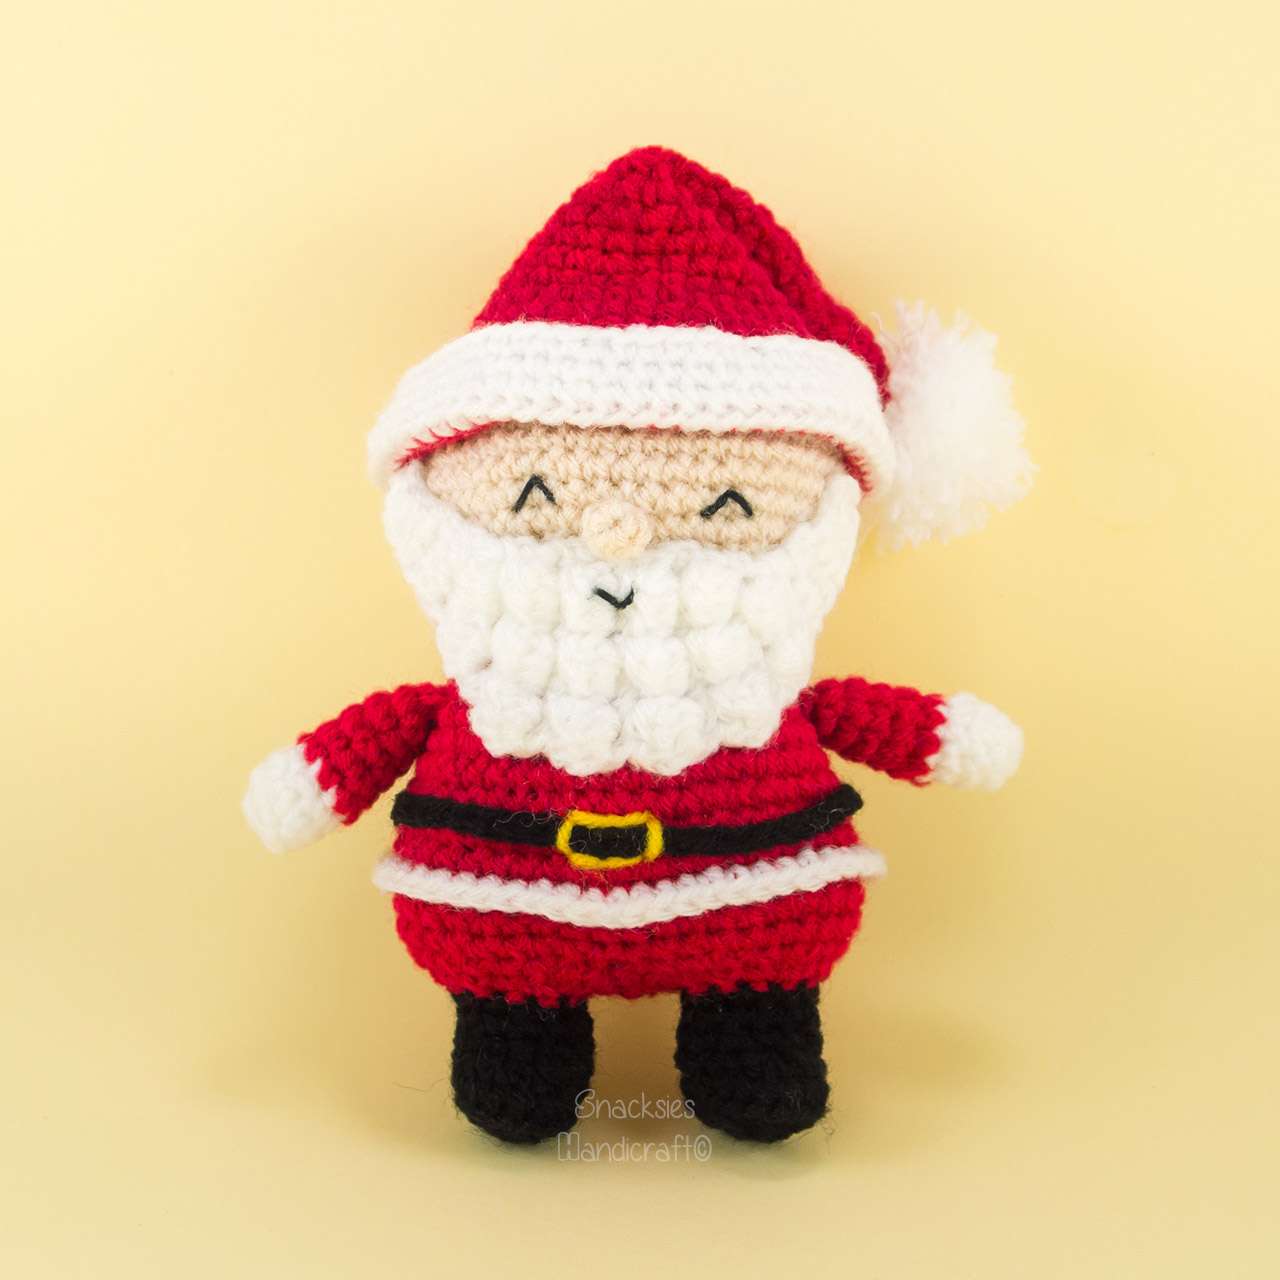 Amigurumi Santa Patterns : Santa Claus Amigurumi ~ Snacksies Handicraft Corner